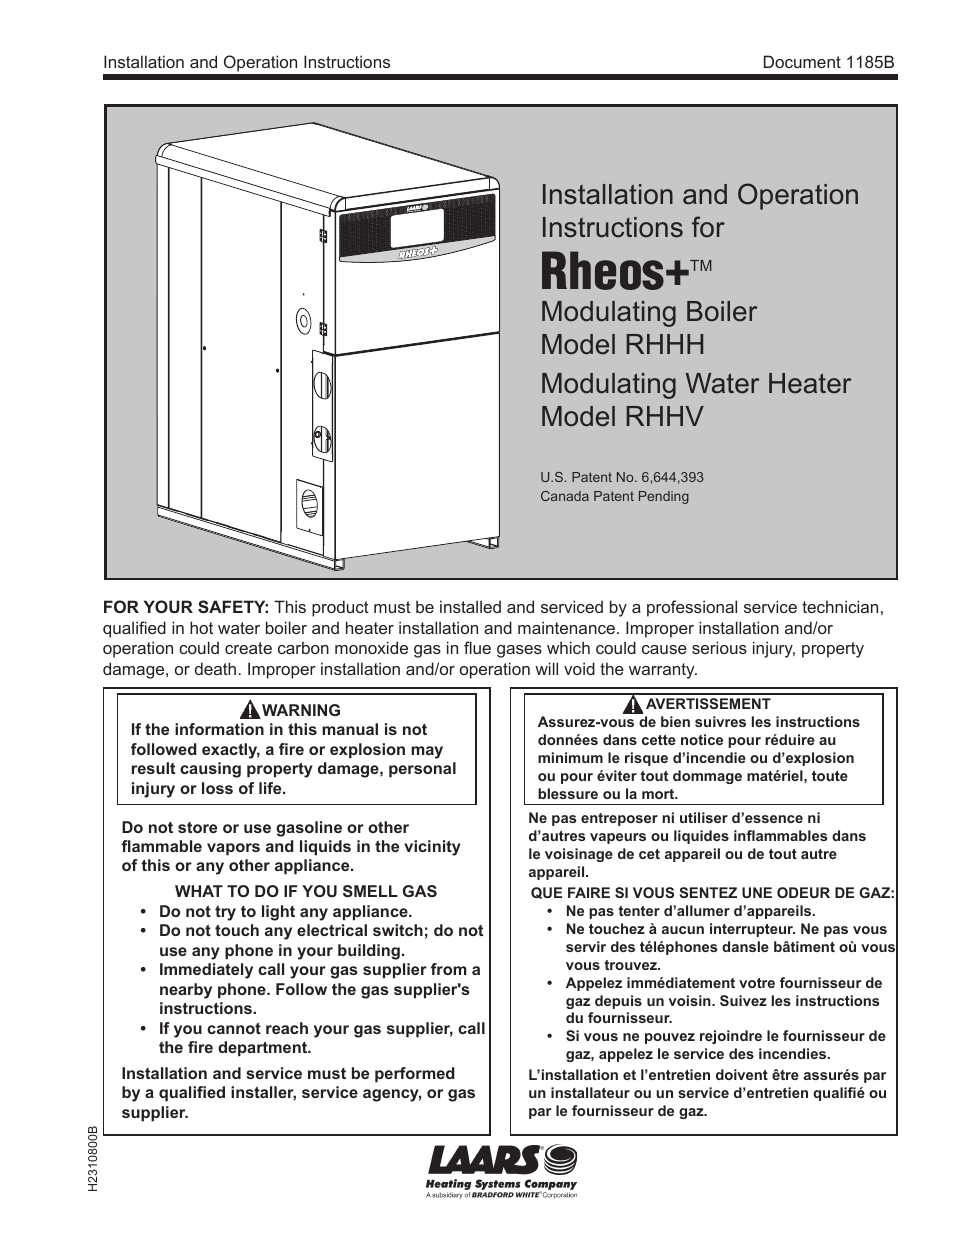 Amazing Munchkin Boilers Troubleshooting Image - Electrical and ...